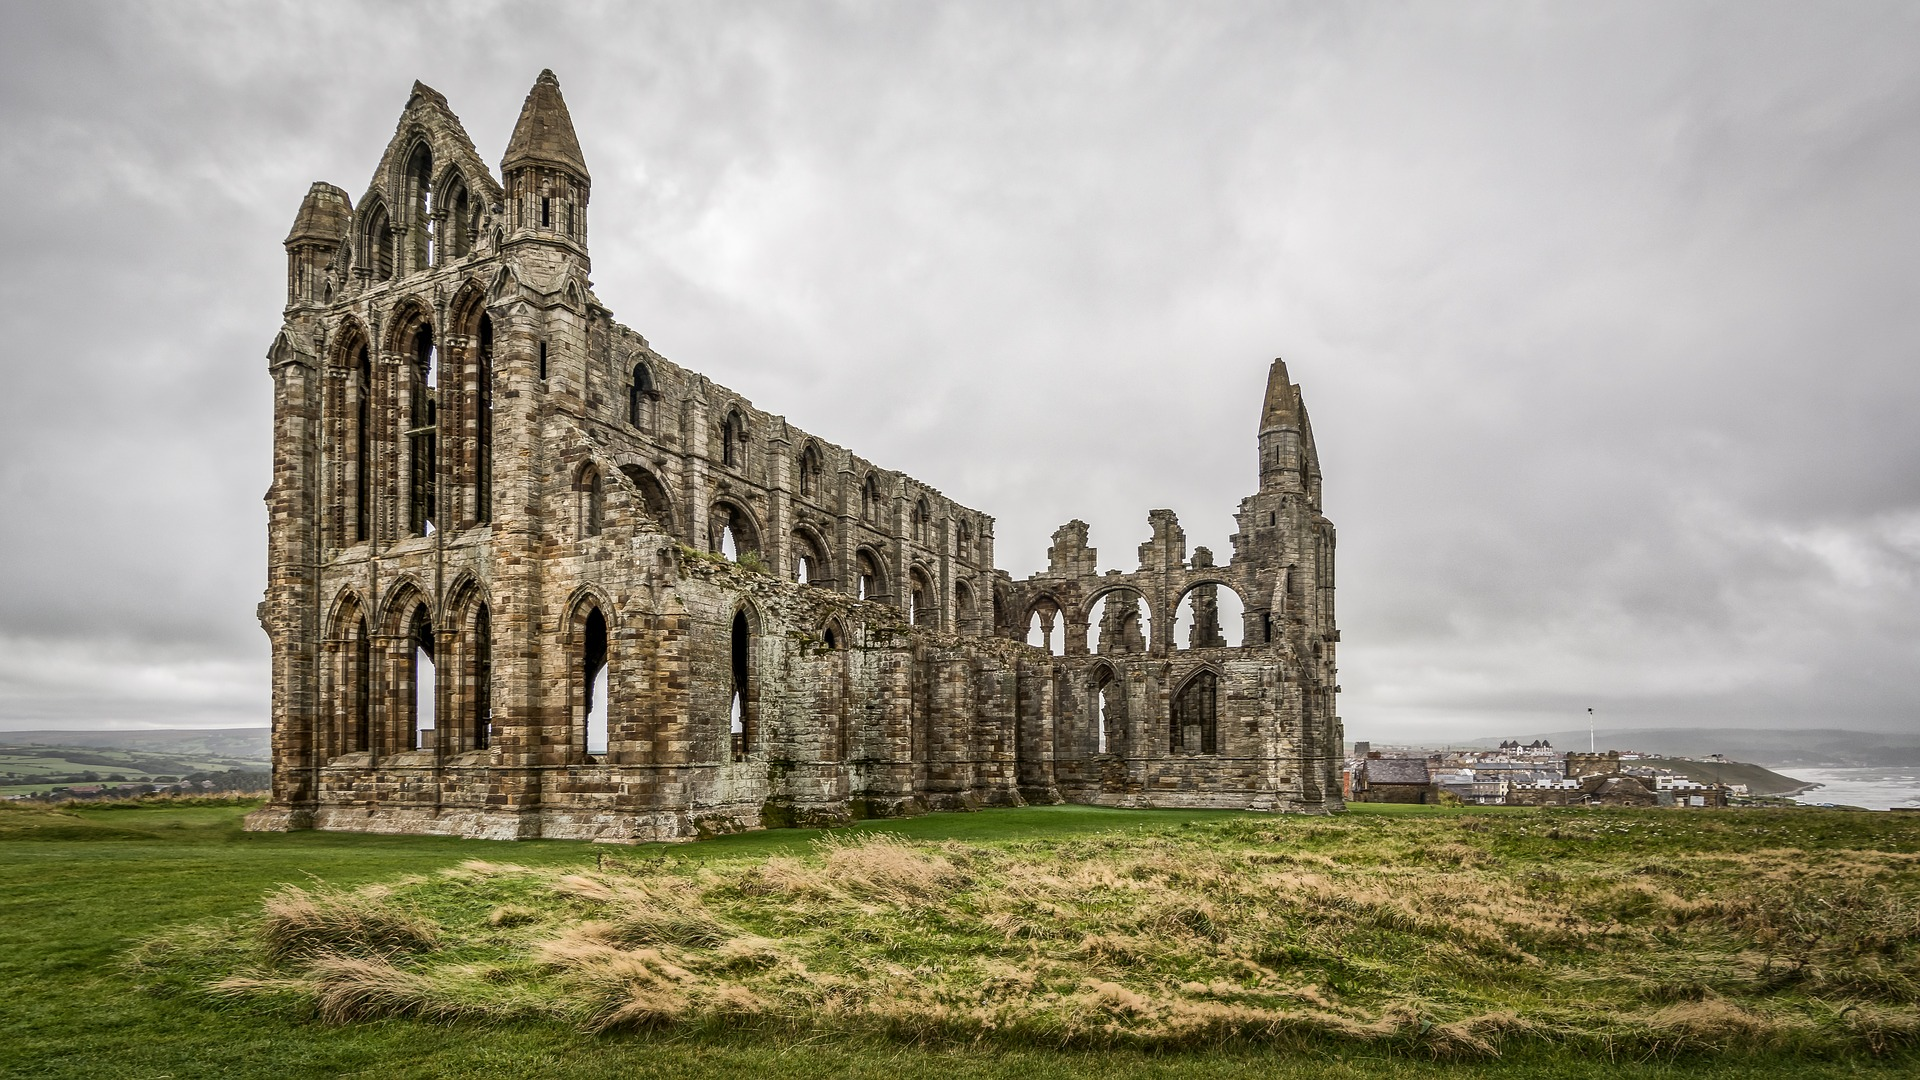 whitby-abbey-2805489_1920